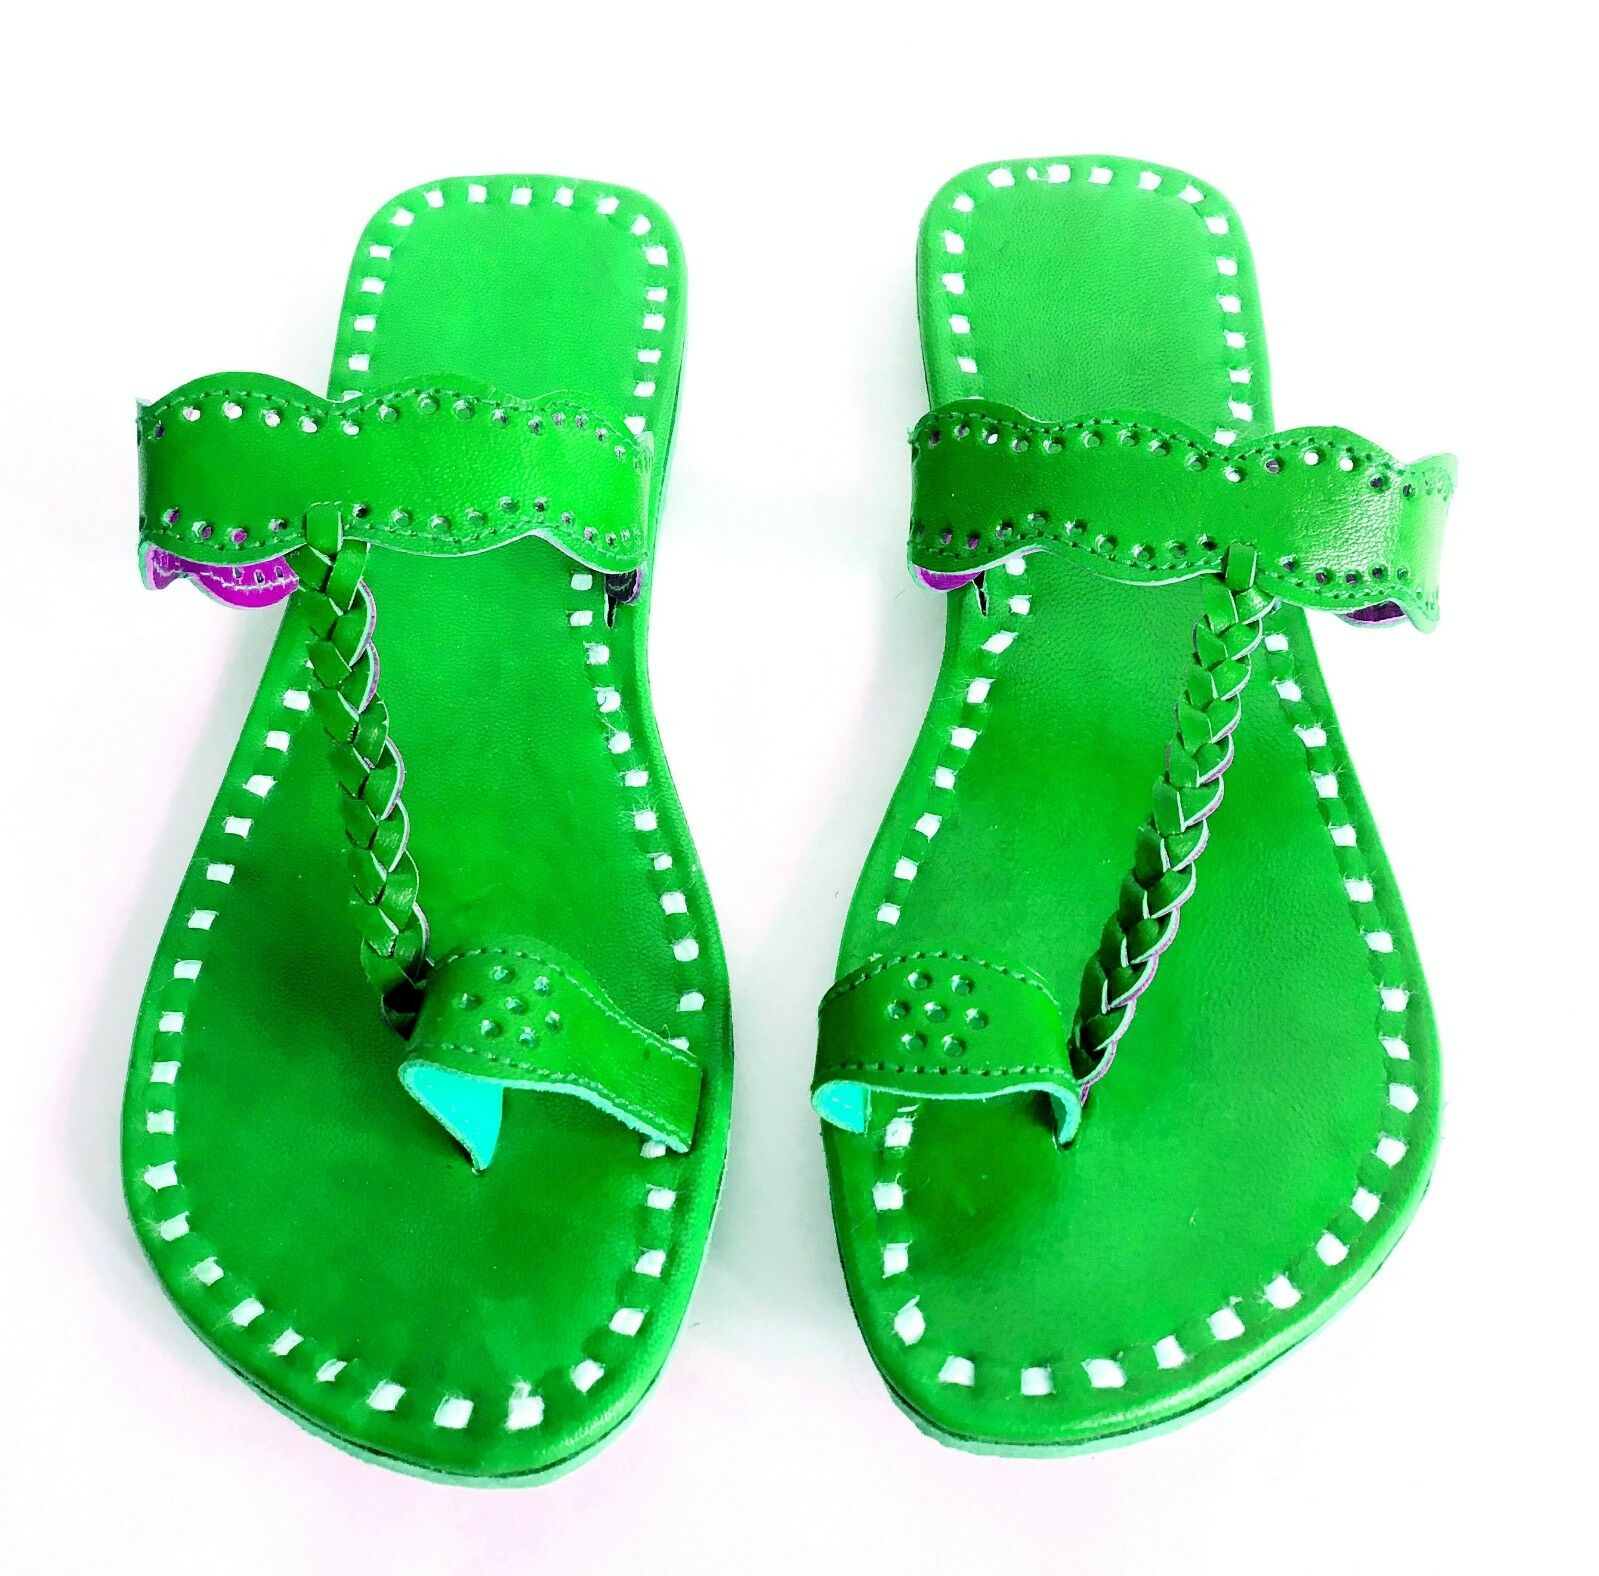 2018 slippers hand stitching slippers handmade leather slippers 2018 shoe flats green slippers 865a90